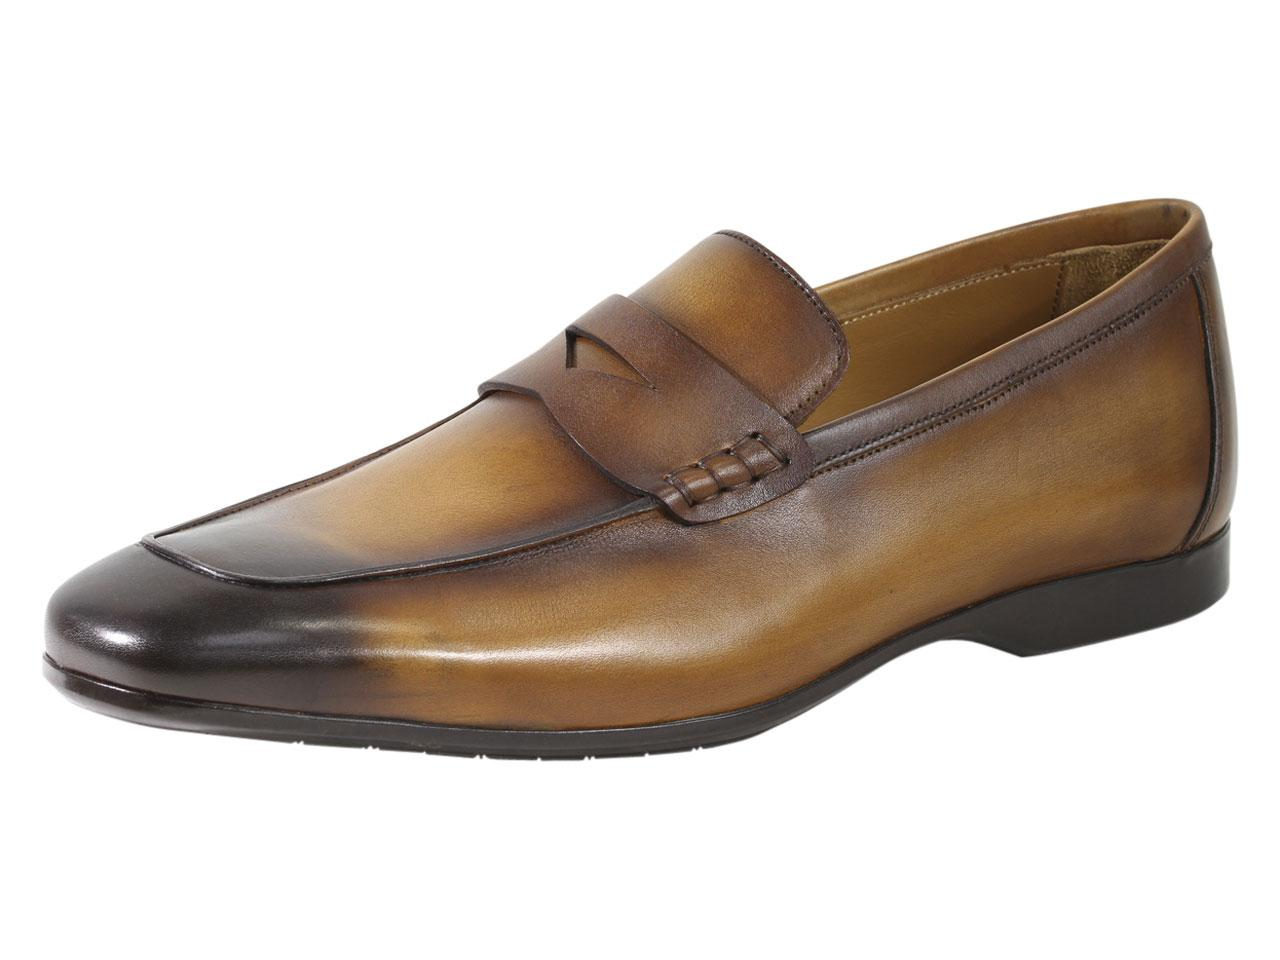 Image of Bruno Magli Men's Margot Penny Loafers Shoes - Brown - 9.5 D(M) US